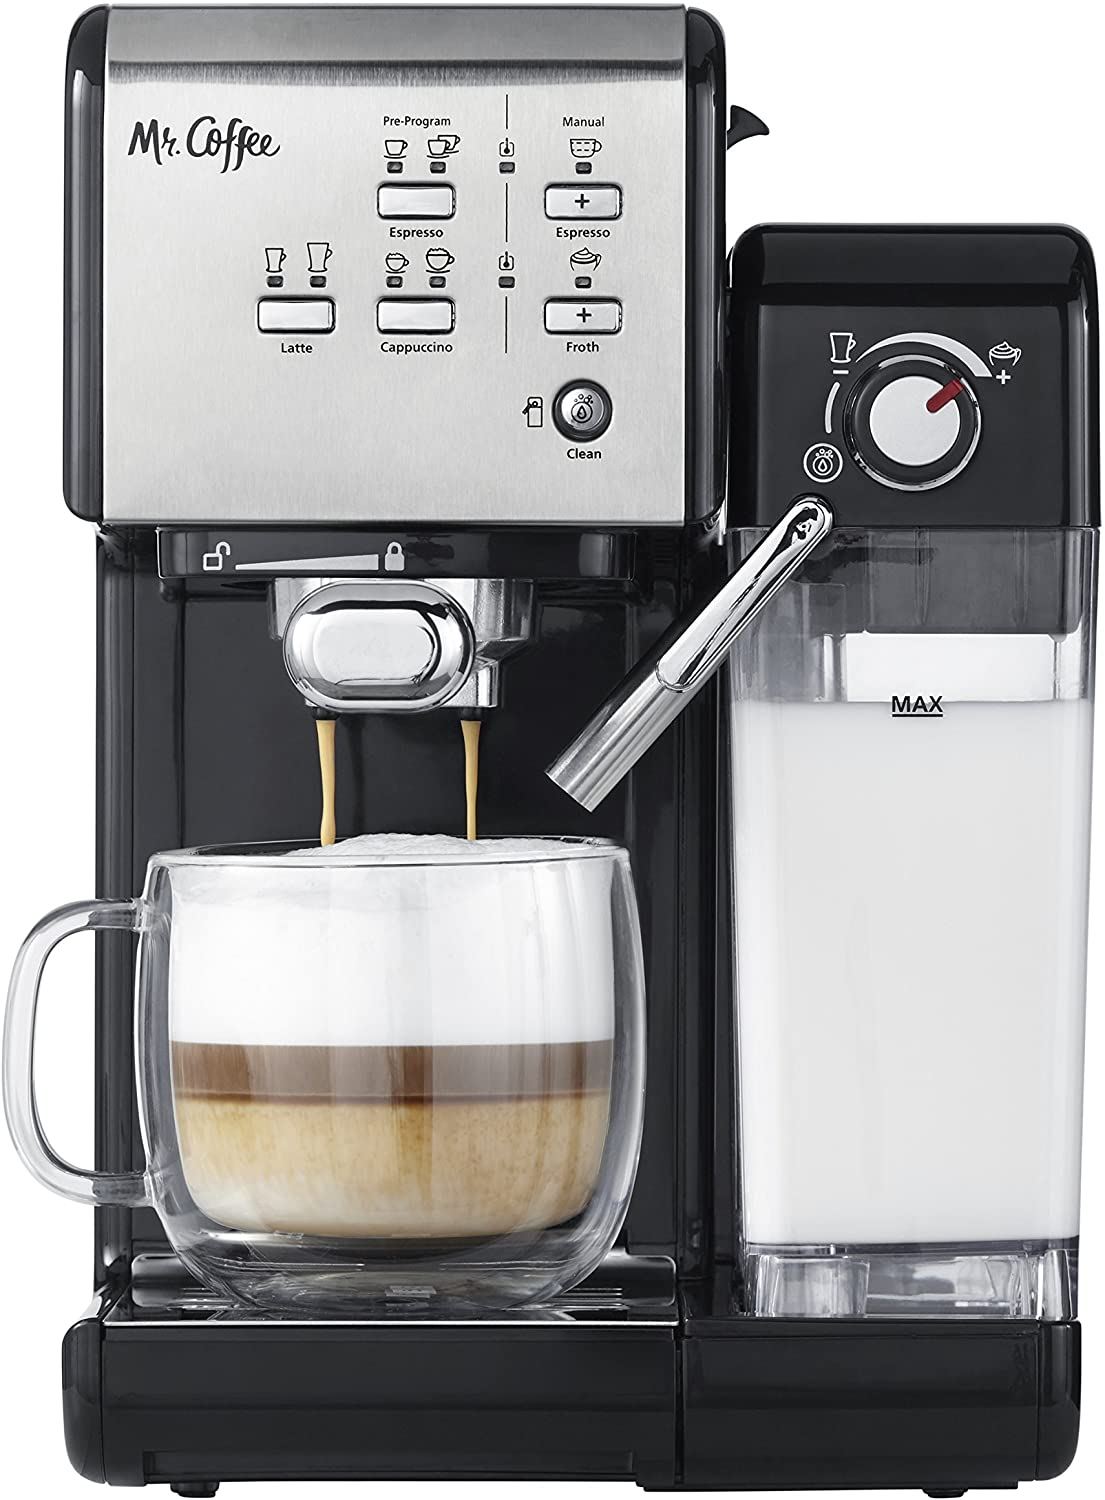 Mr. Coffee One-Touch Coffee House Espresso Machine Amazon